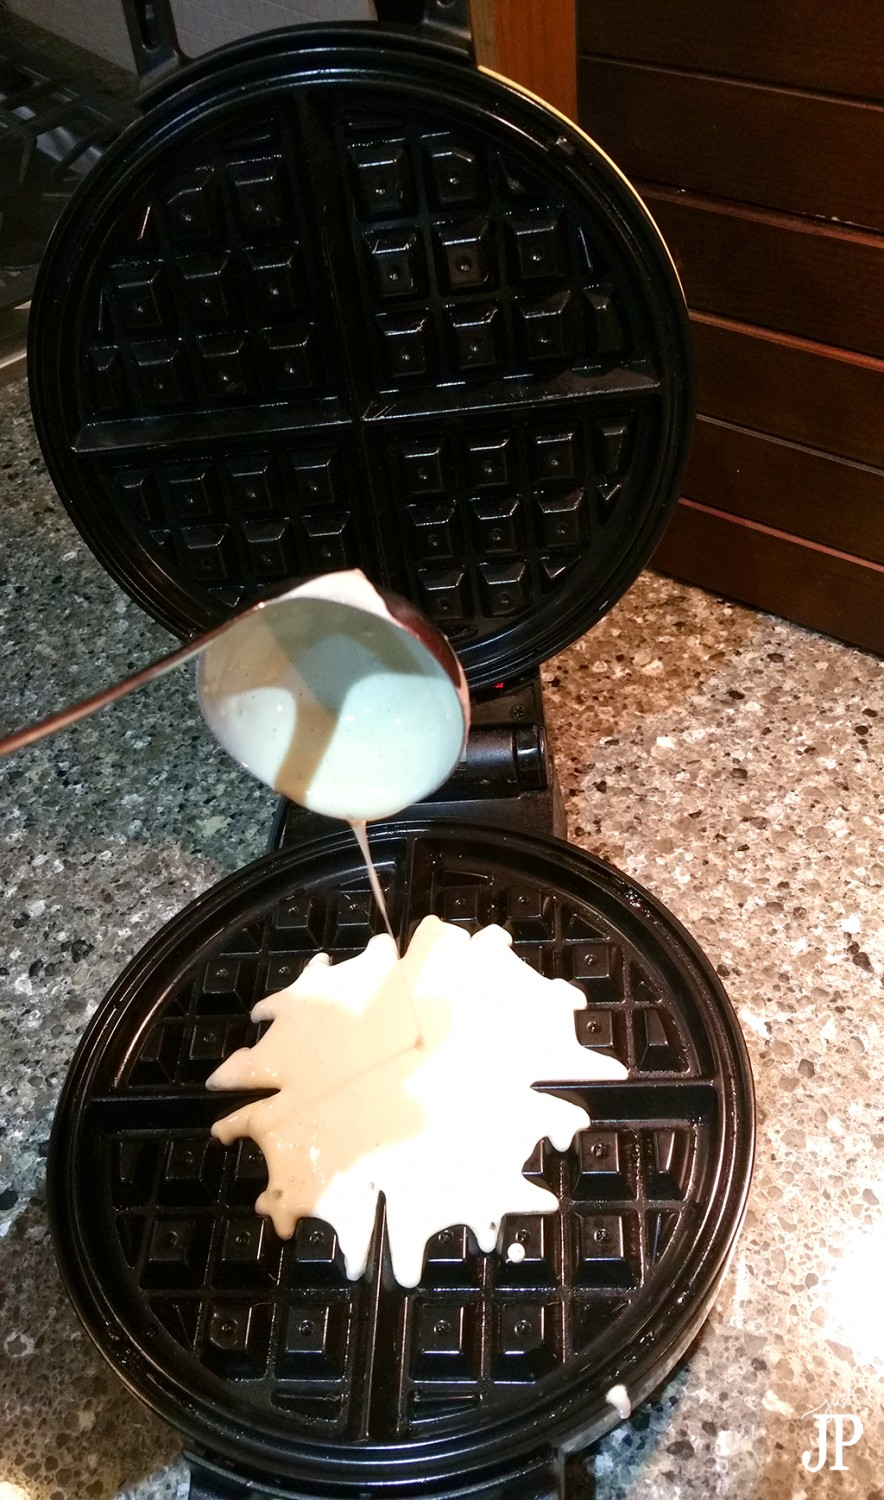 Pour-batter-into-Waffle-Iron-Jpriest